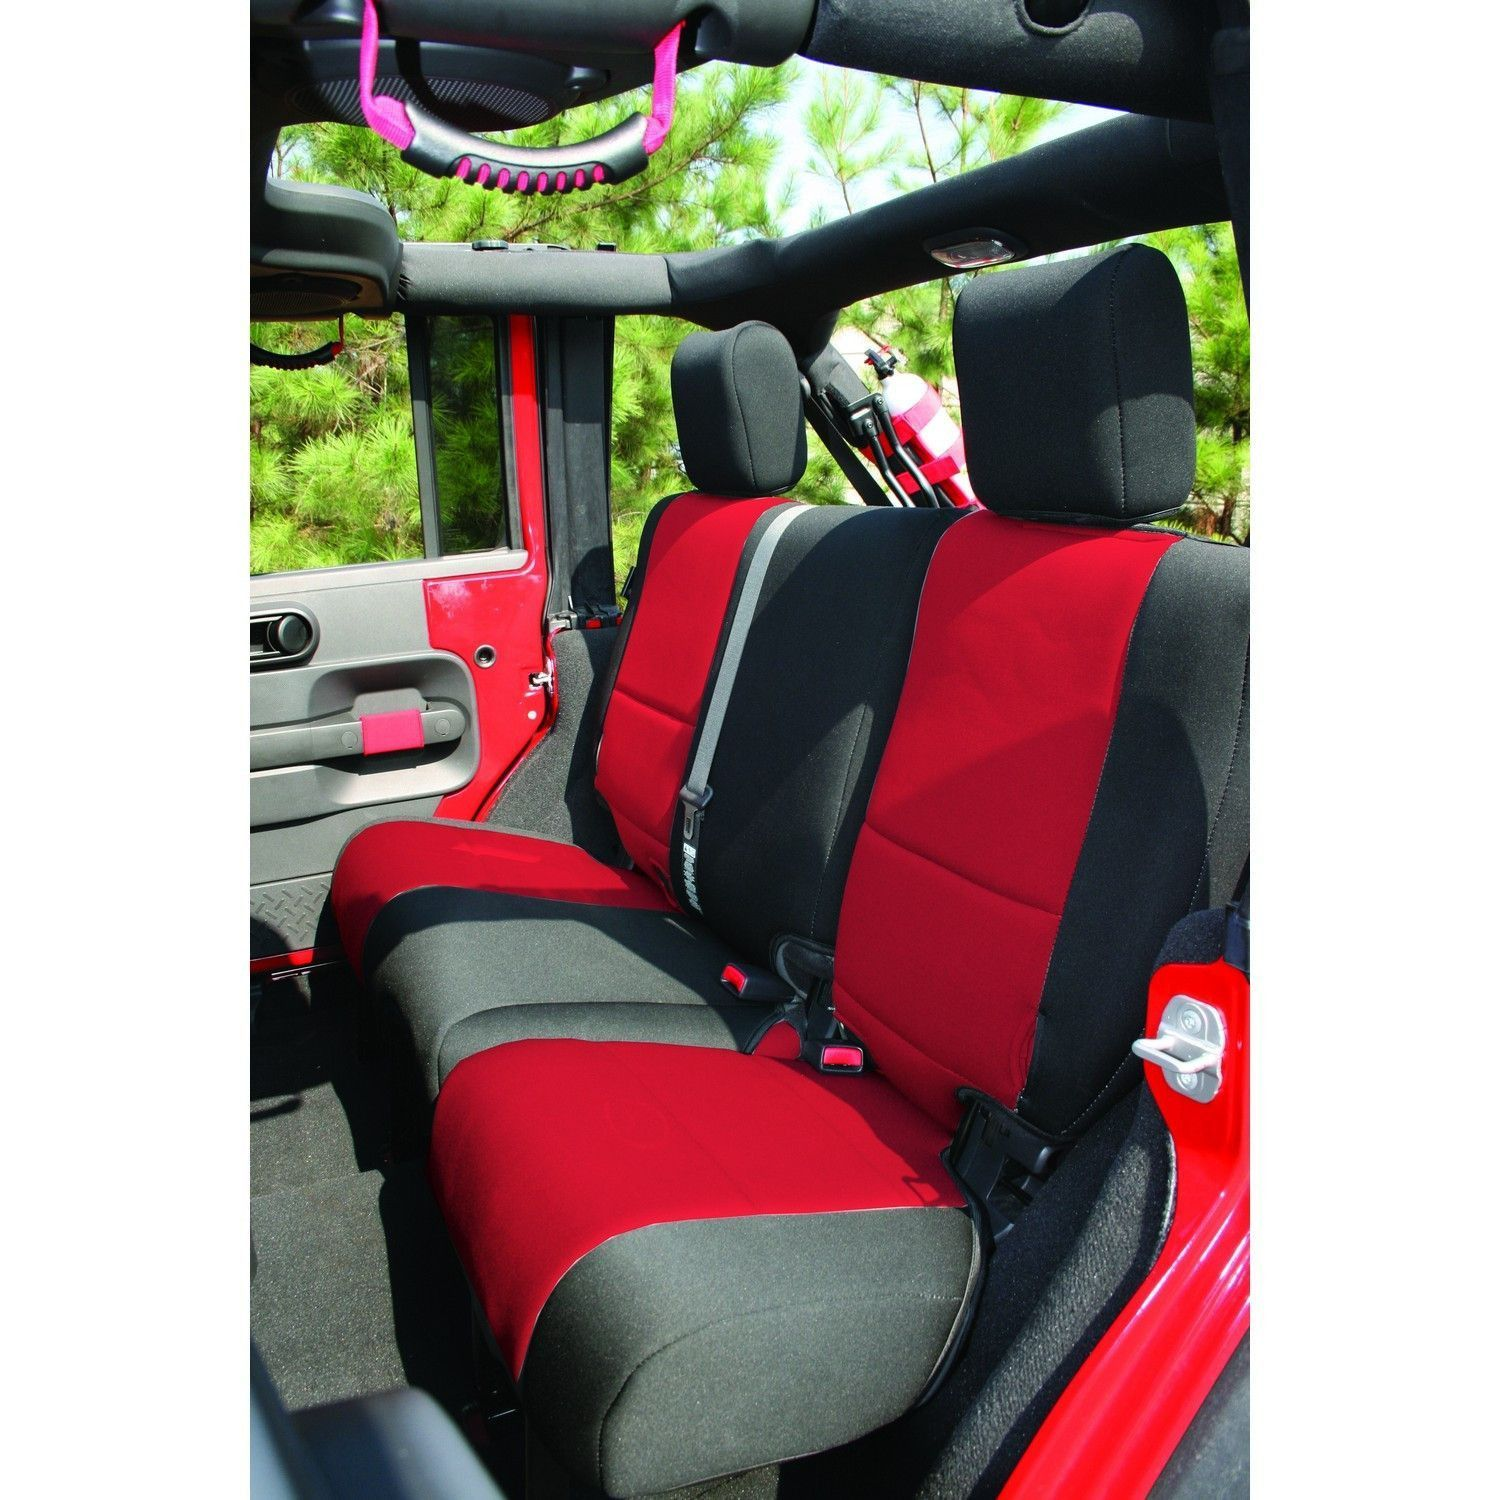 Neoprene Rear Seat Cover Black Red 07 16 Jeep Wrangler Jku Neoprene Seat Covers Jeep Wrangler Seat Covers Jeep Wrangler Interior